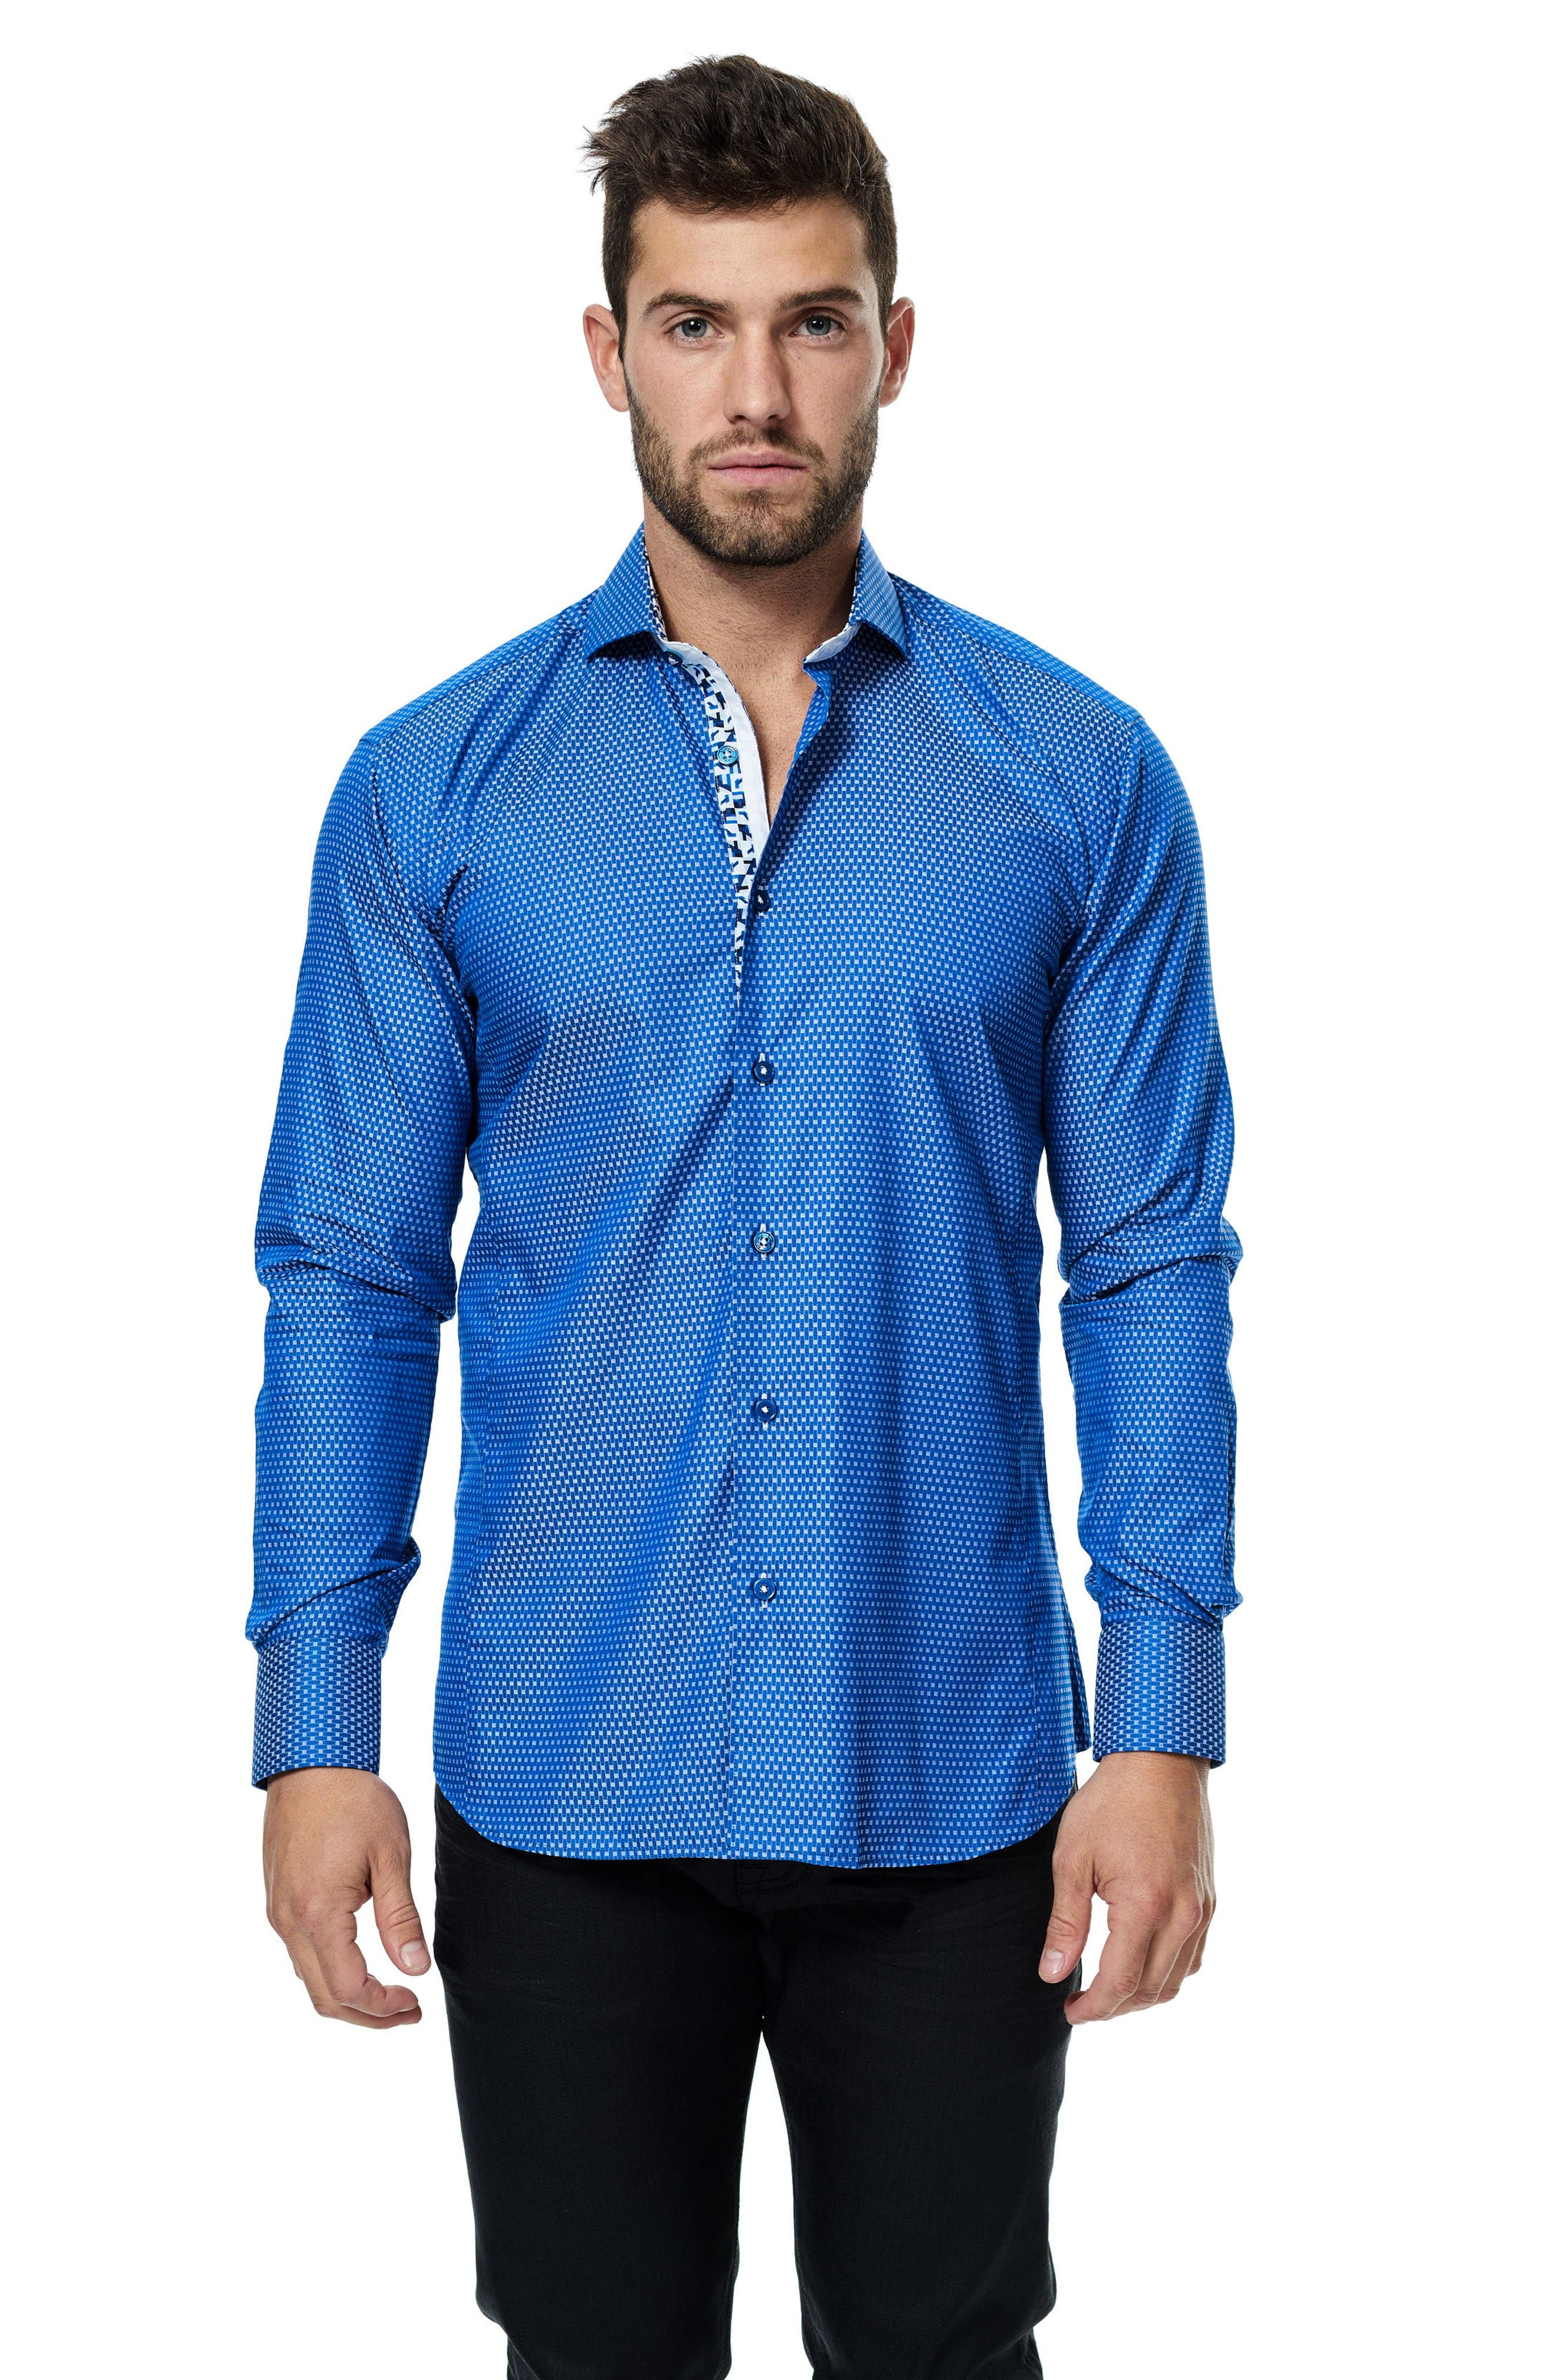 Wall Street Jacquard Sport Shirt,                             Alternate thumbnail 3, color,                             Medium Blue